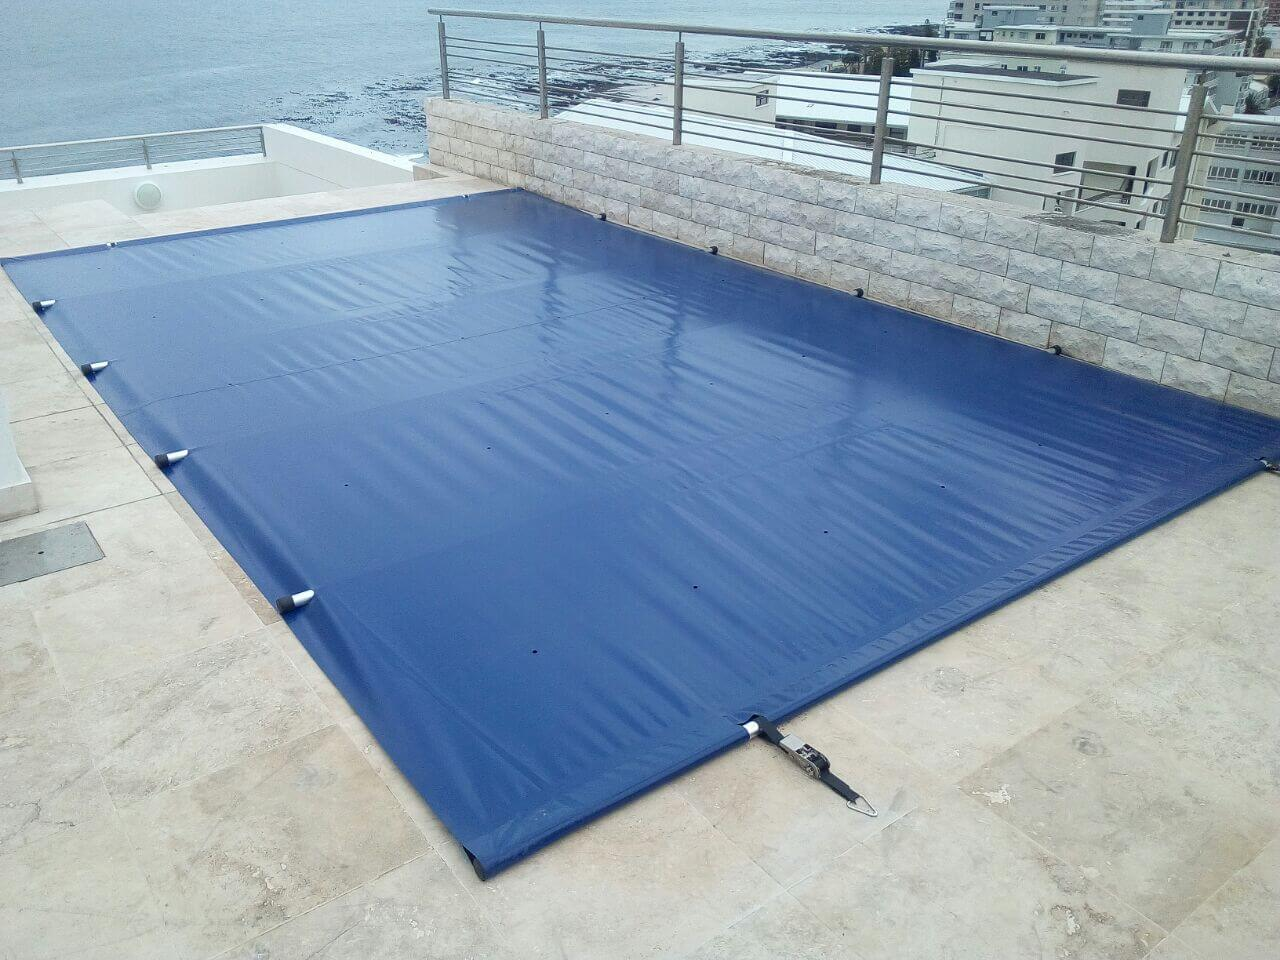 pole pool cover leo seapoint 1